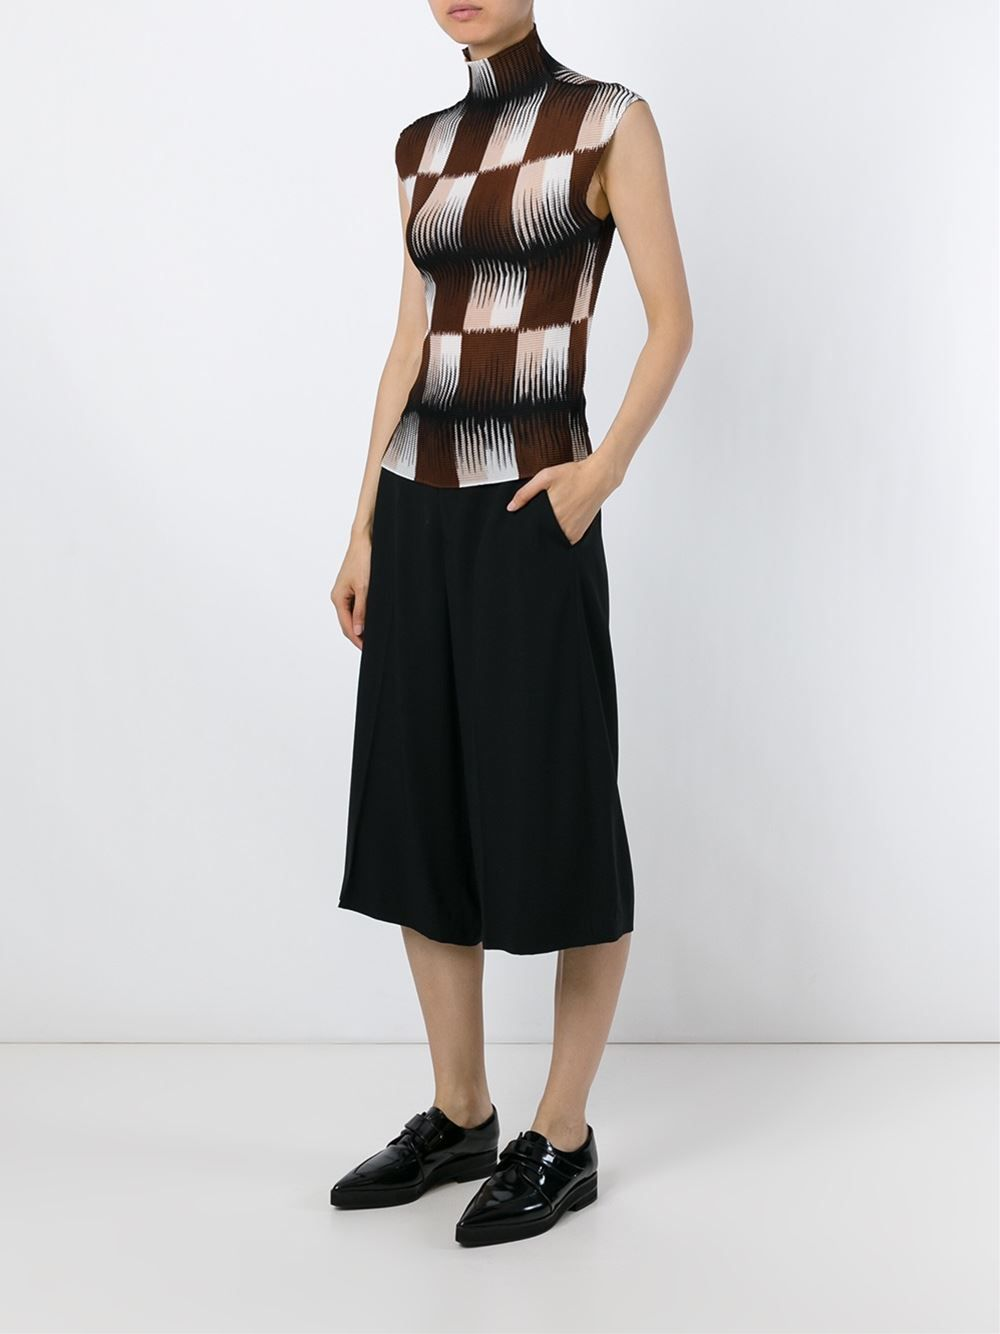 Shop Issey Miyake Cauliflower checked turtle neck top in Divo from the world's best independent boutiques at farfetch.com. Shop 300 boutiques at one address.